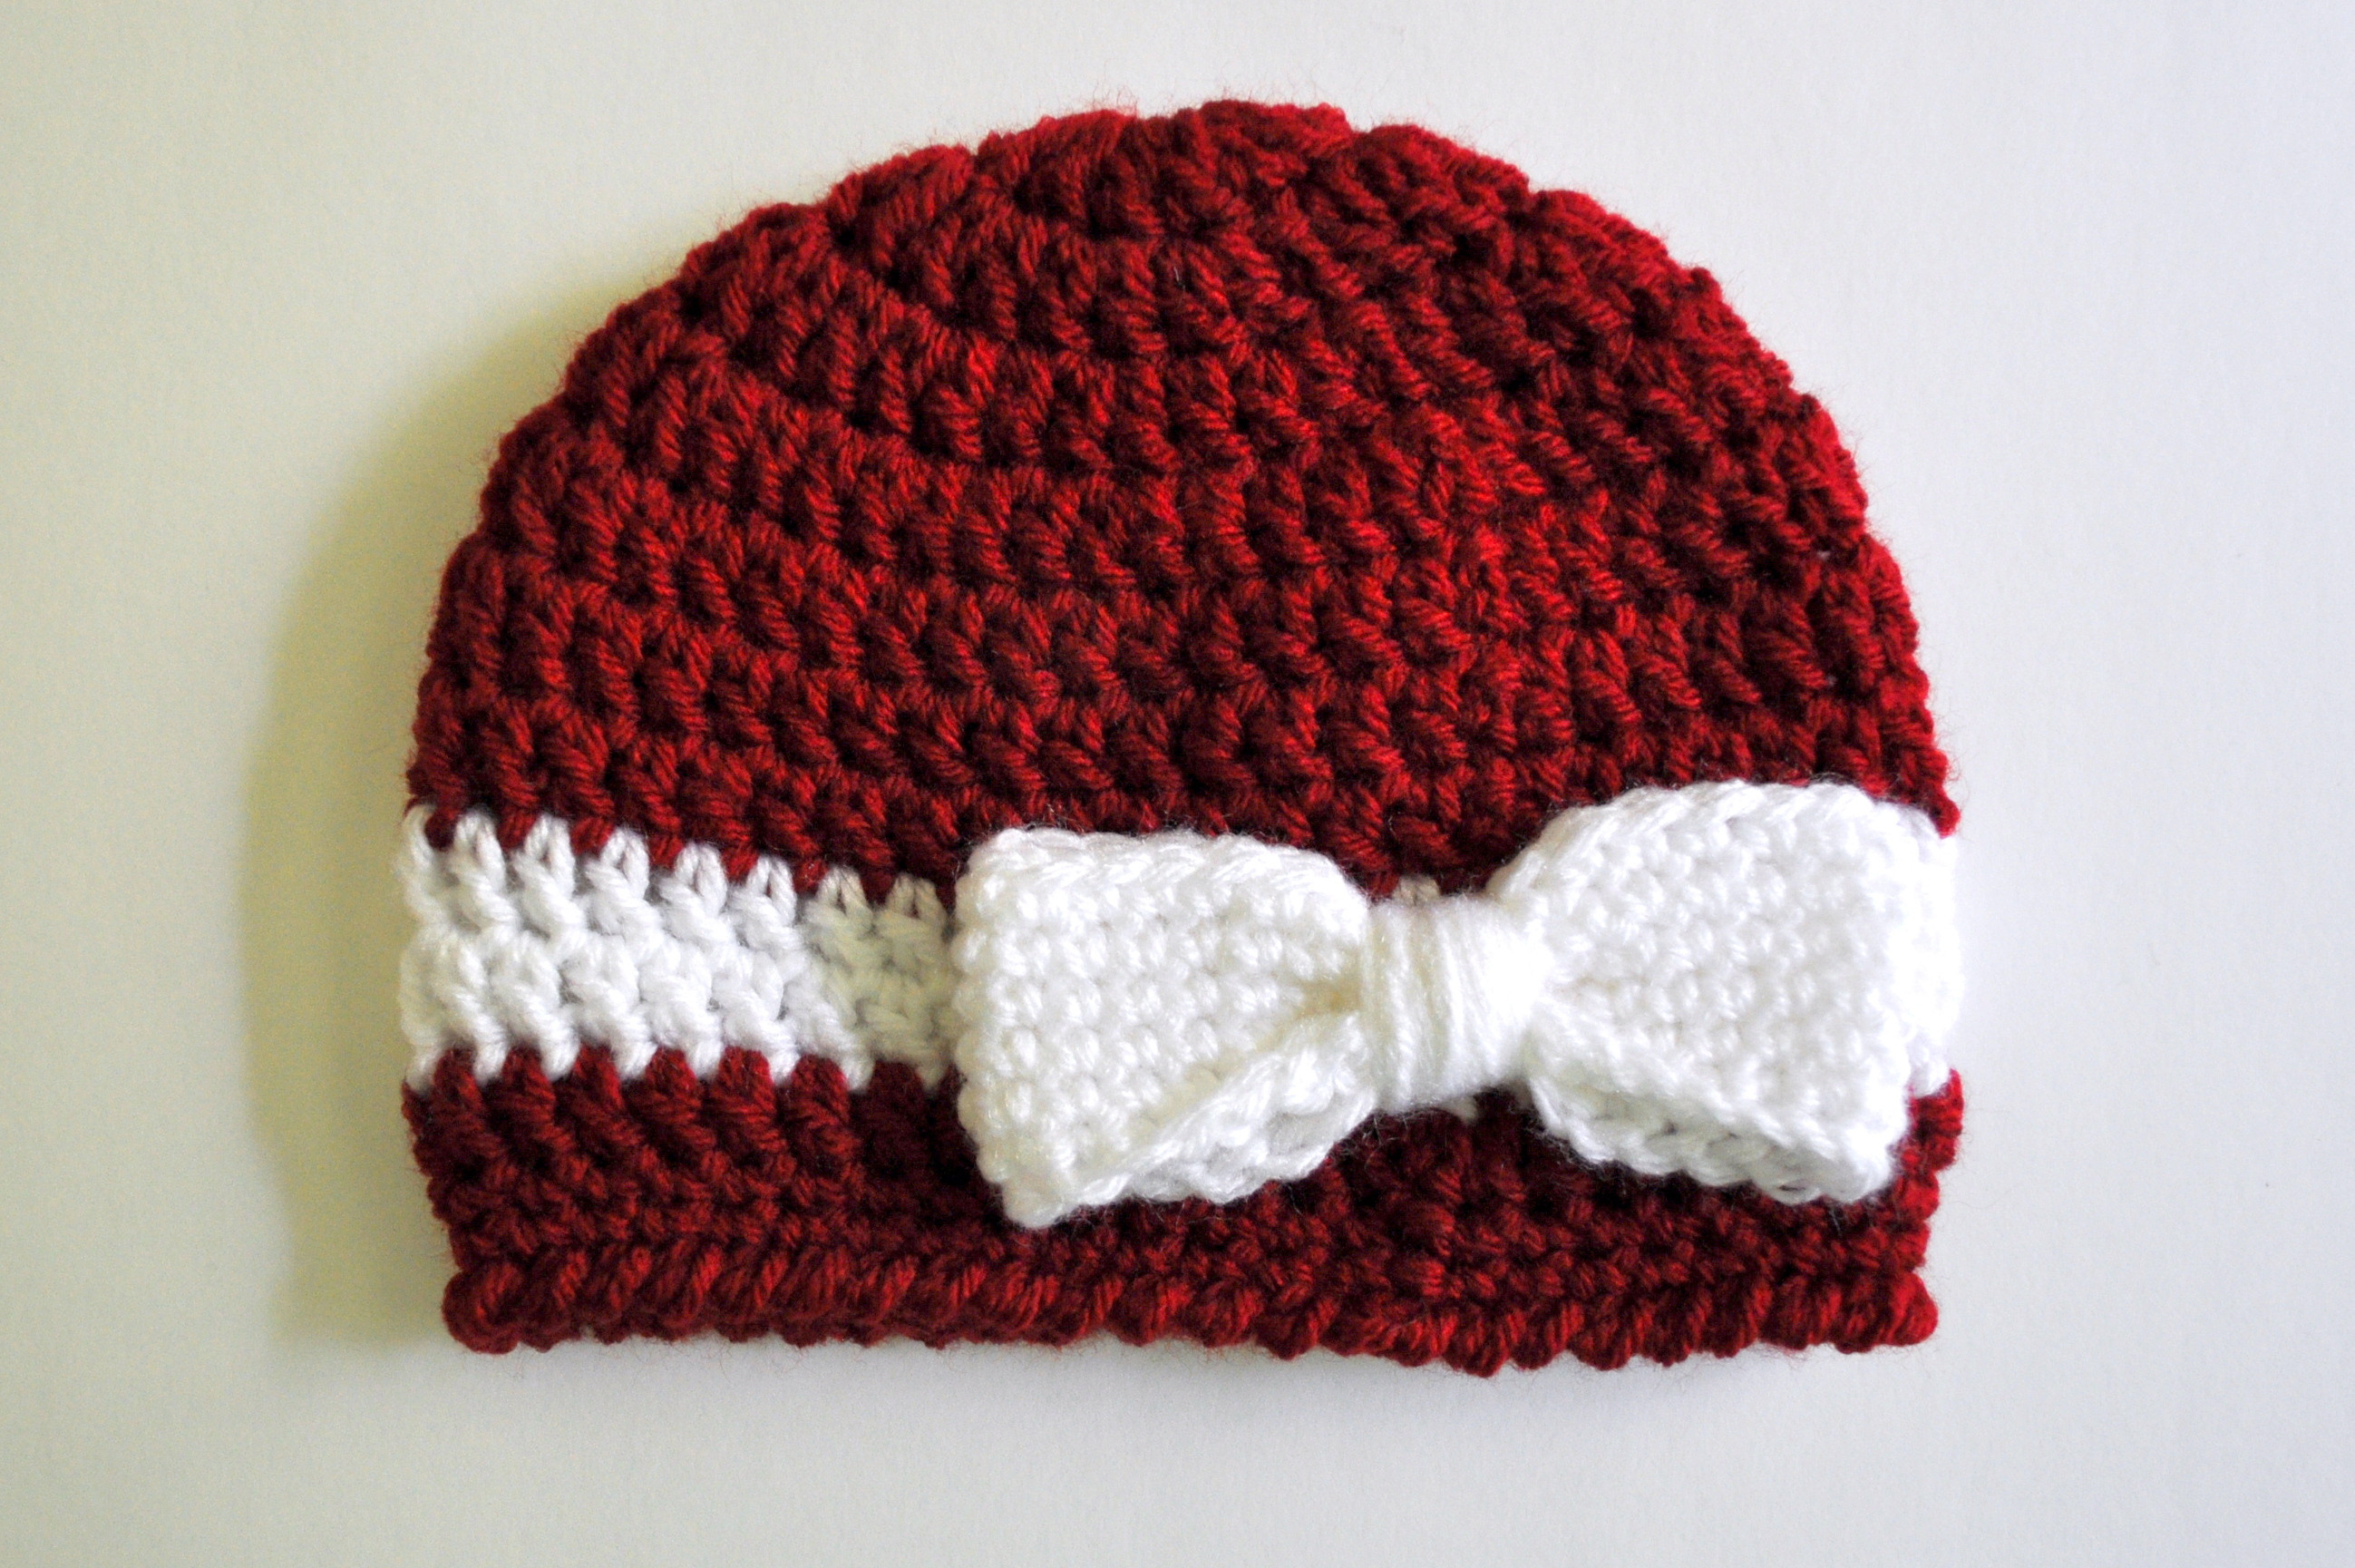 Best Of Free Pattern Crochet Bow and Ribbon Baby Hat Free Crochet Beanie Hat Pattern Of Amazing 48 Images Free Crochet Beanie Hat Pattern